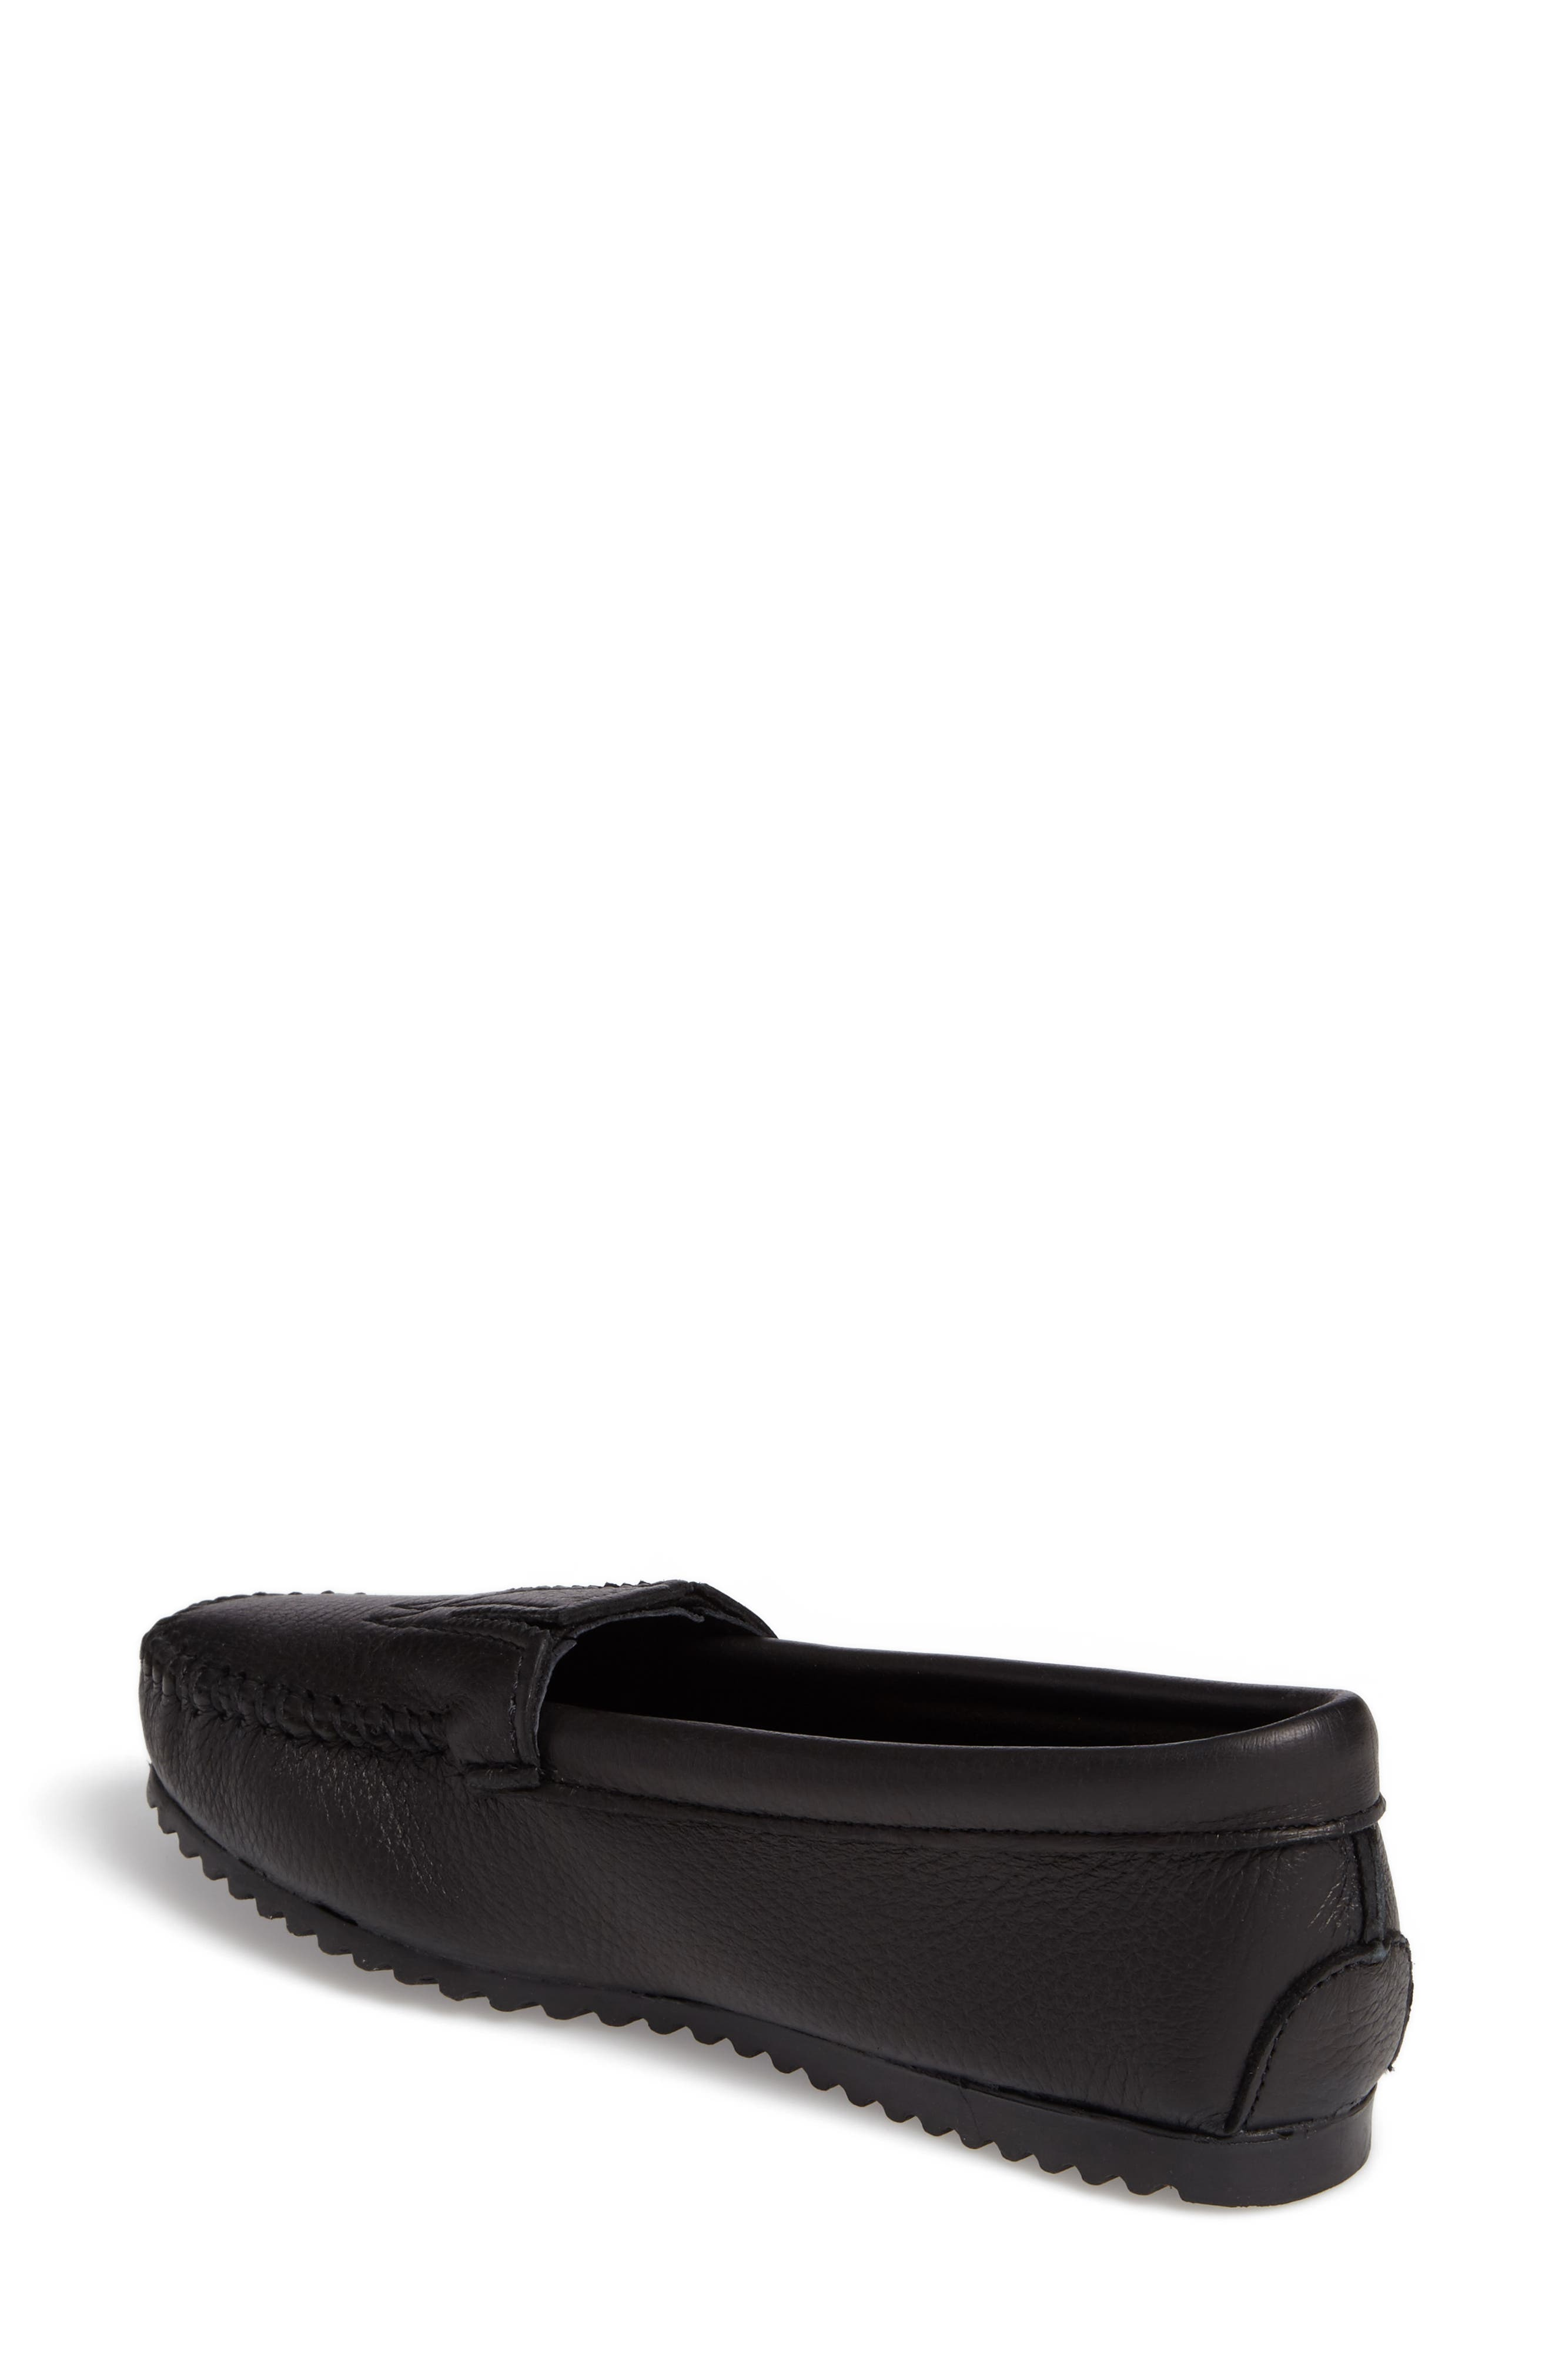 MINNETONKA, Moccasin, Alternate thumbnail 2, color, BLACK